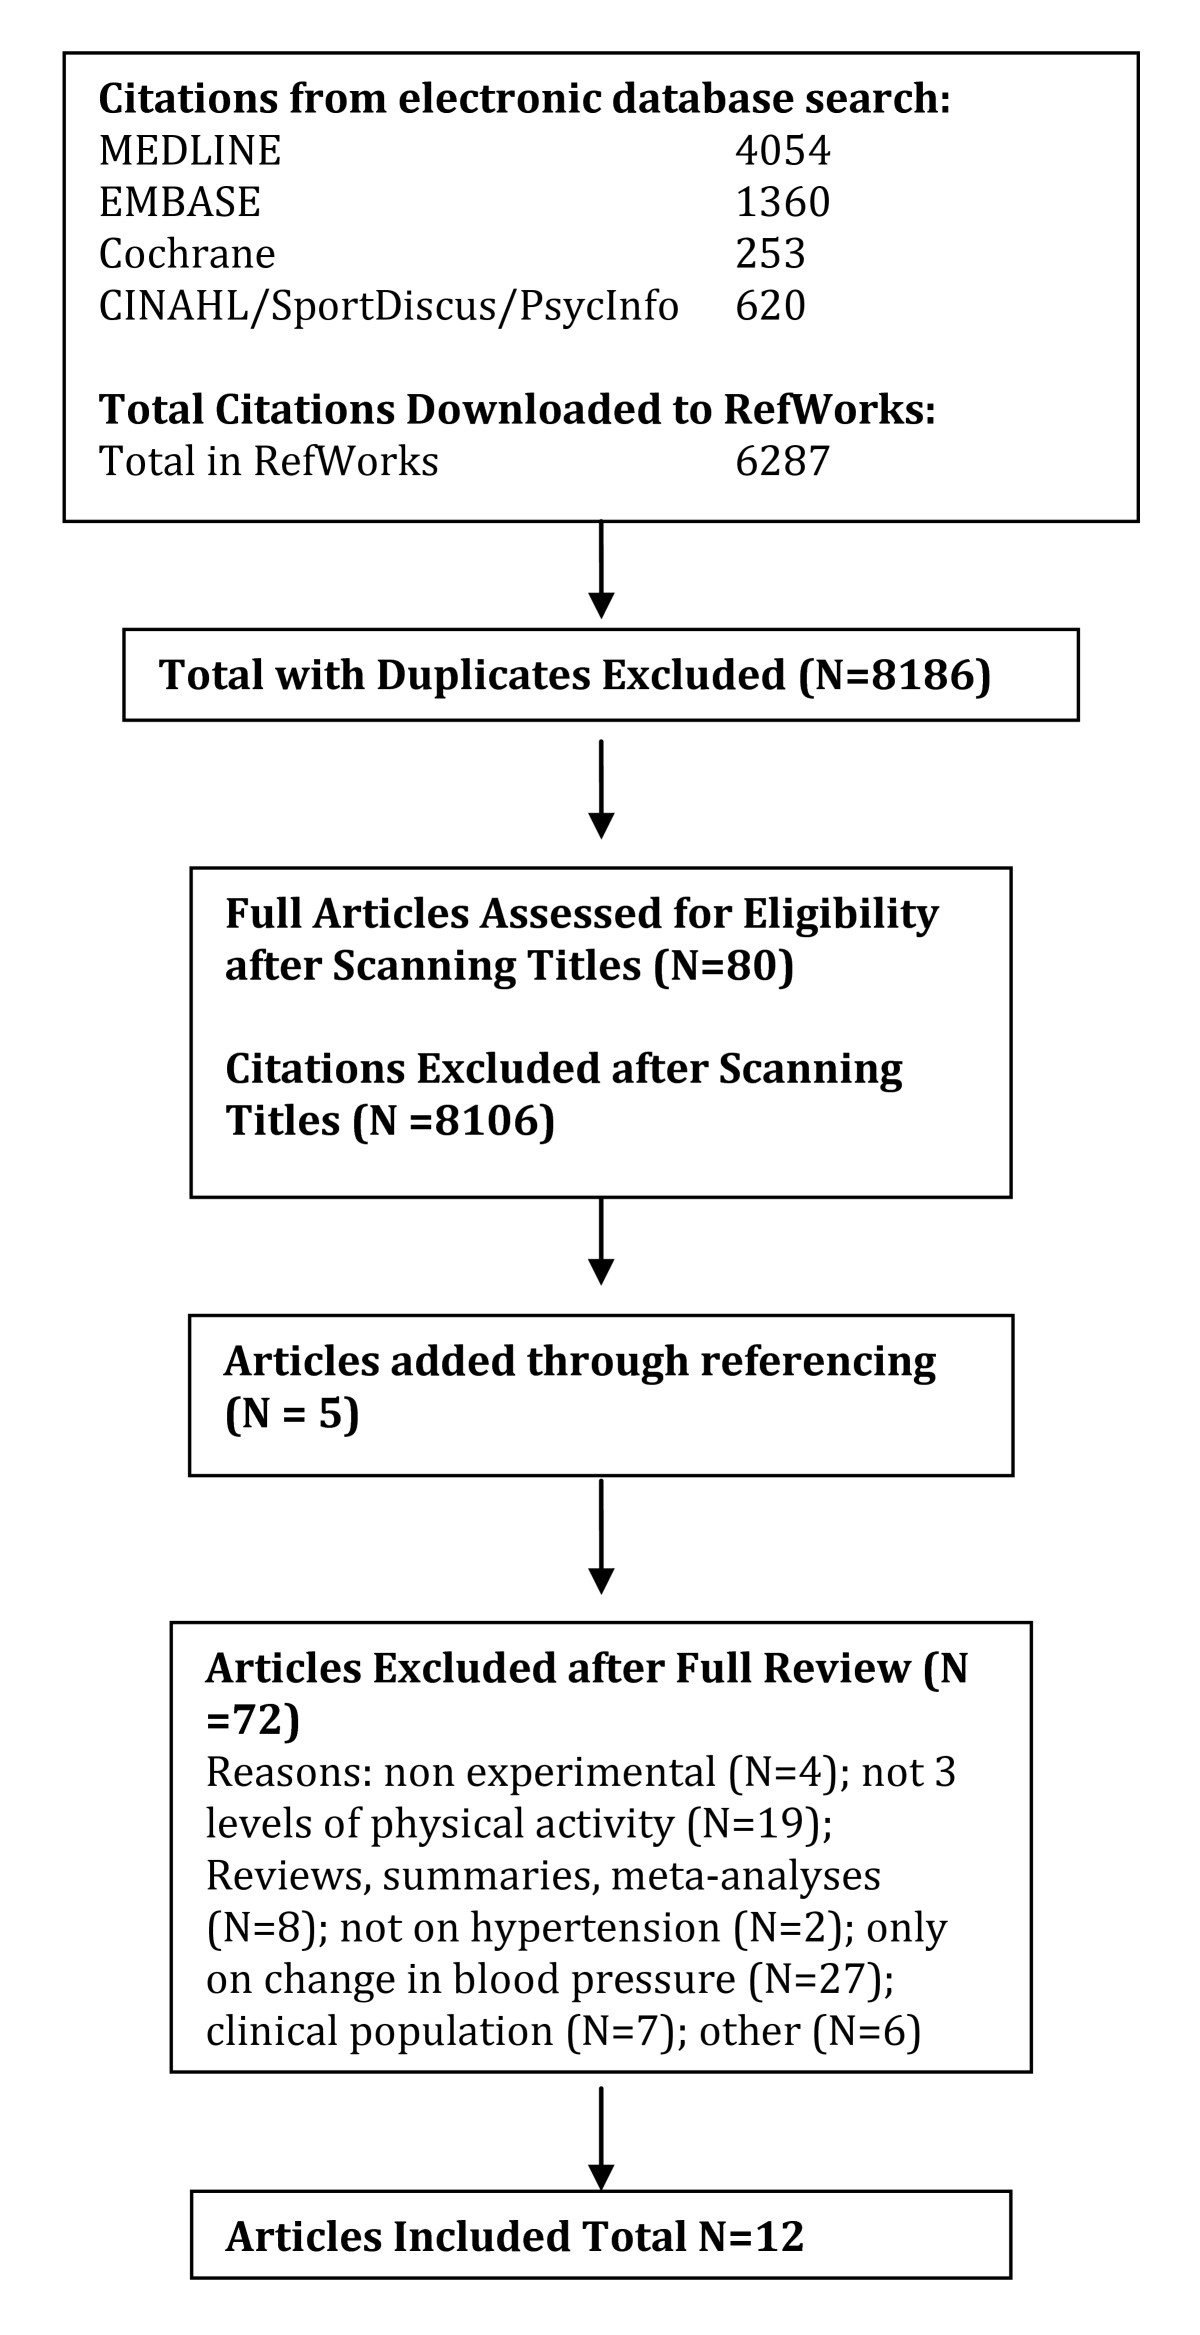 https://static-content.springer.com/image/art%3A10.1186%2F1479-5868-7-39/MediaObjects/12966_2009_Article_345_Fig6_HTML.jpg